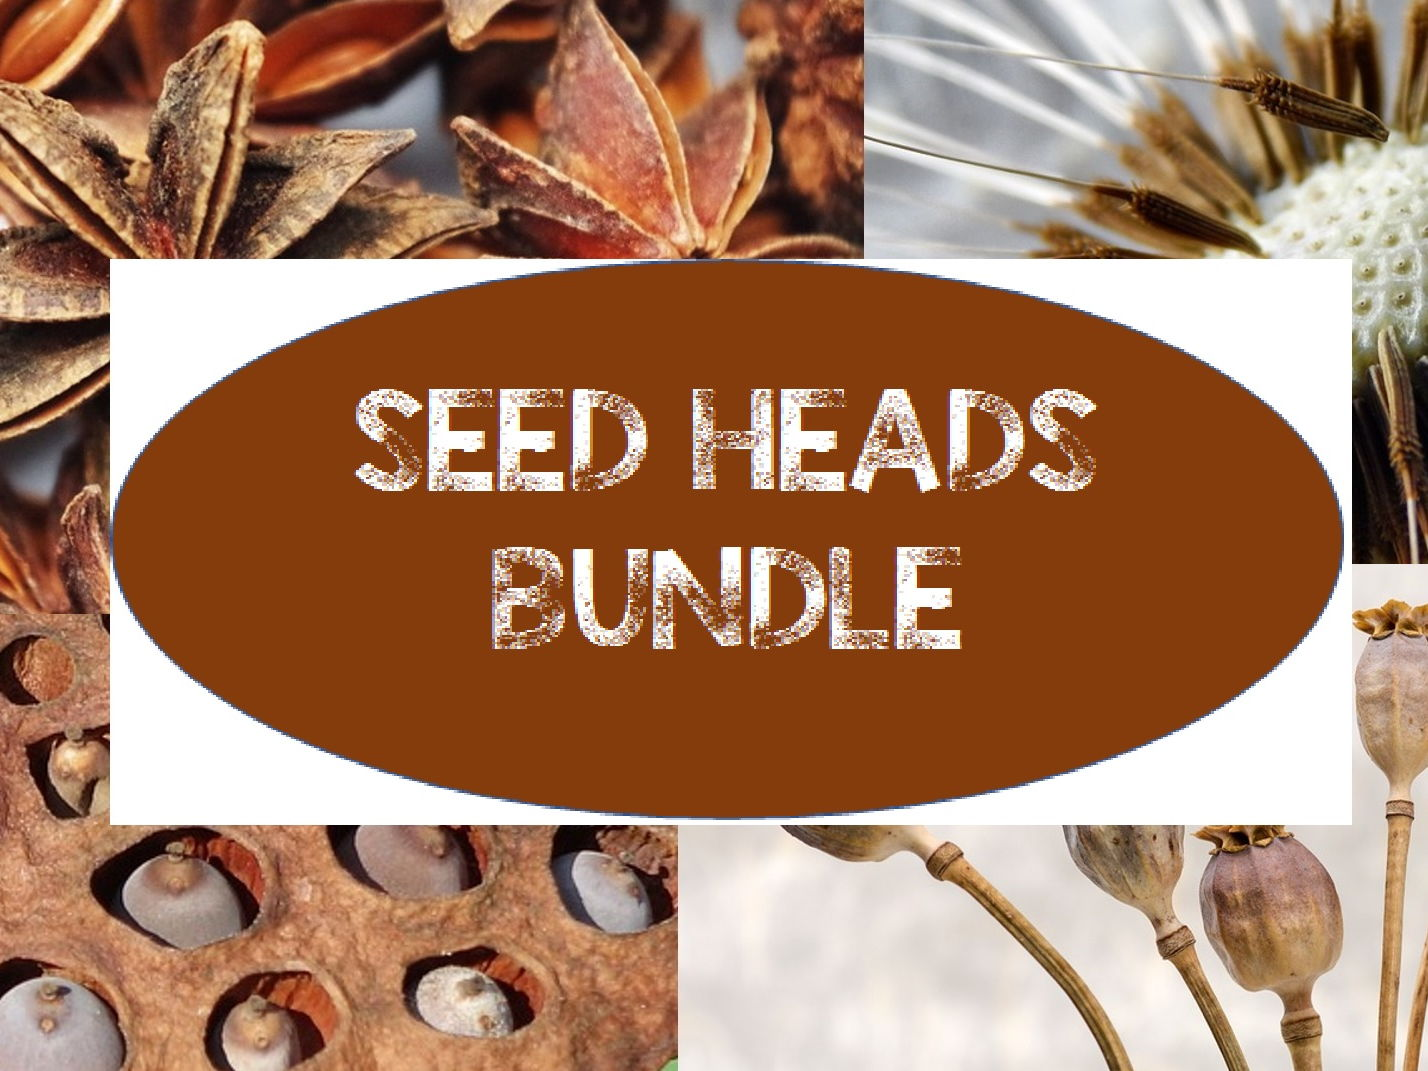 Seed Heads Natural Forms Bundle.